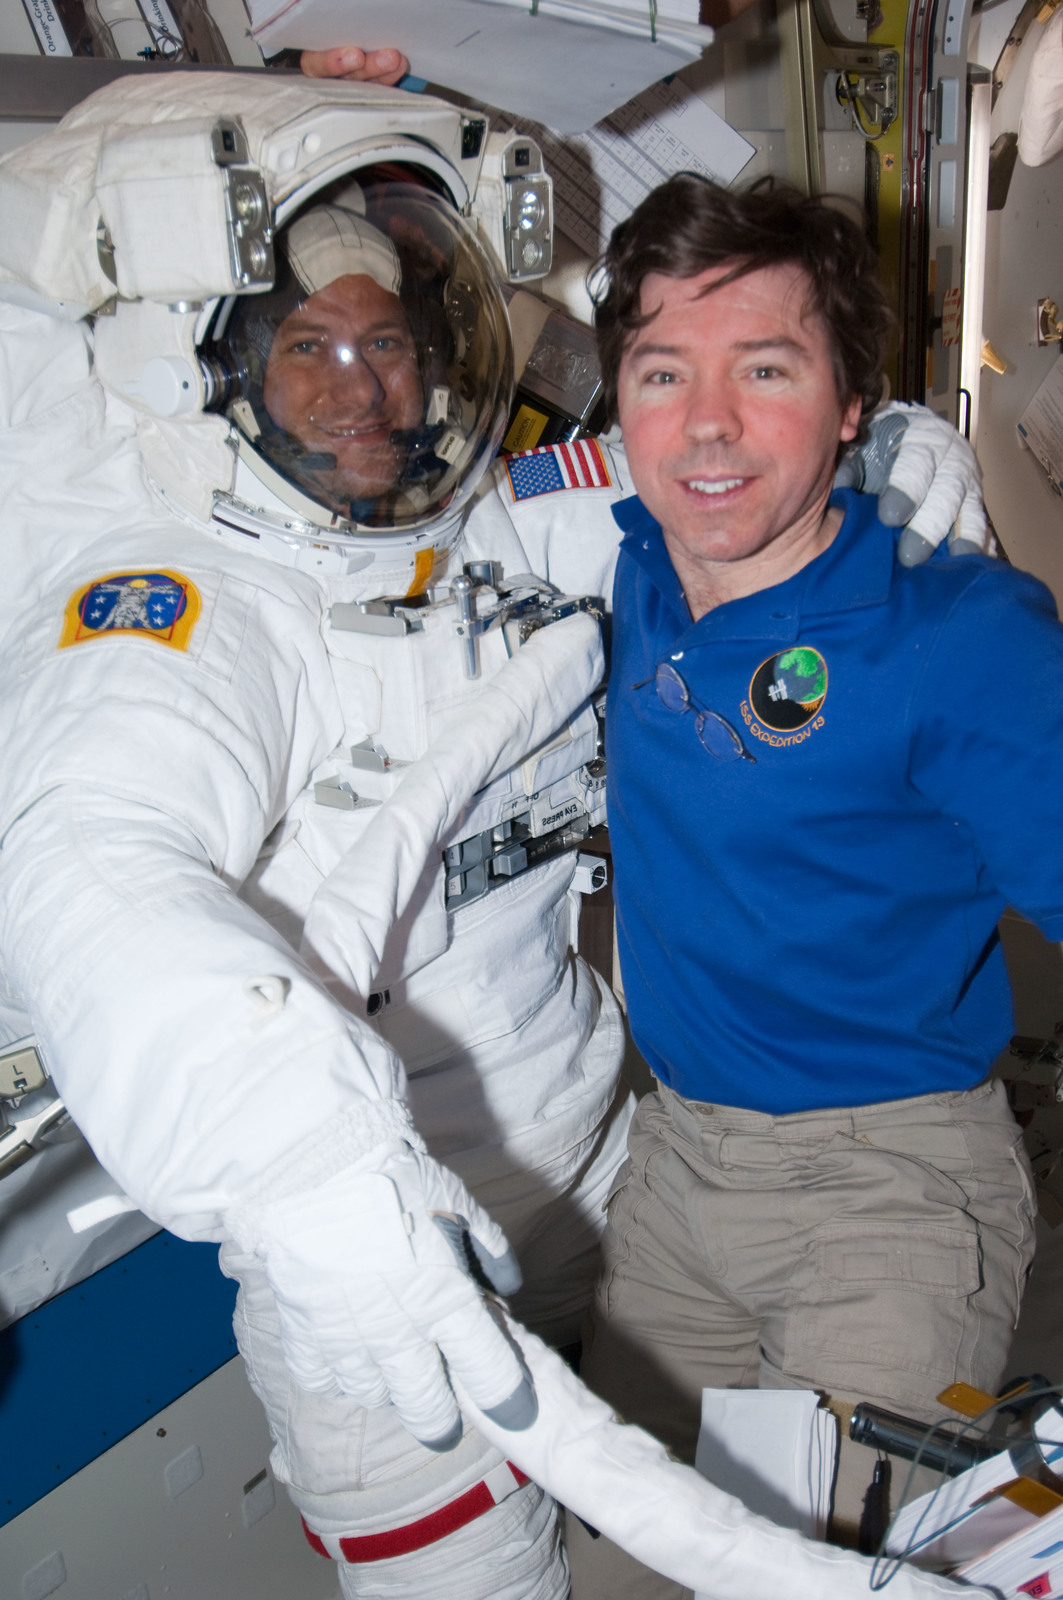 S127E007043 - STS-127 - Marshburn and Barratt in the A/L during STS-127 / Expedition 20 Joint Operations